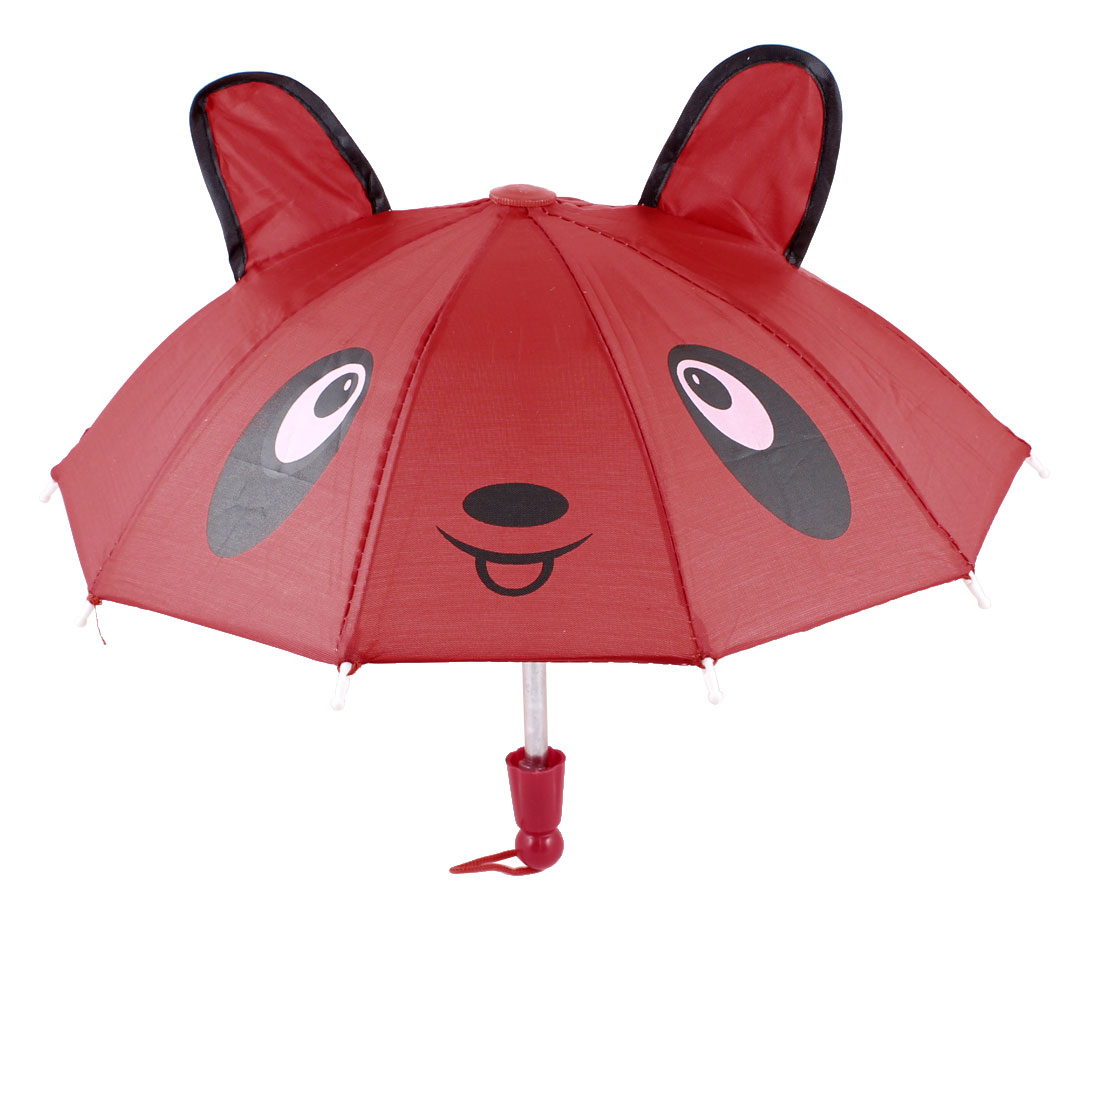 Bear Ears Decor True Red Mini Animal Umbrella Toy for Children Kids